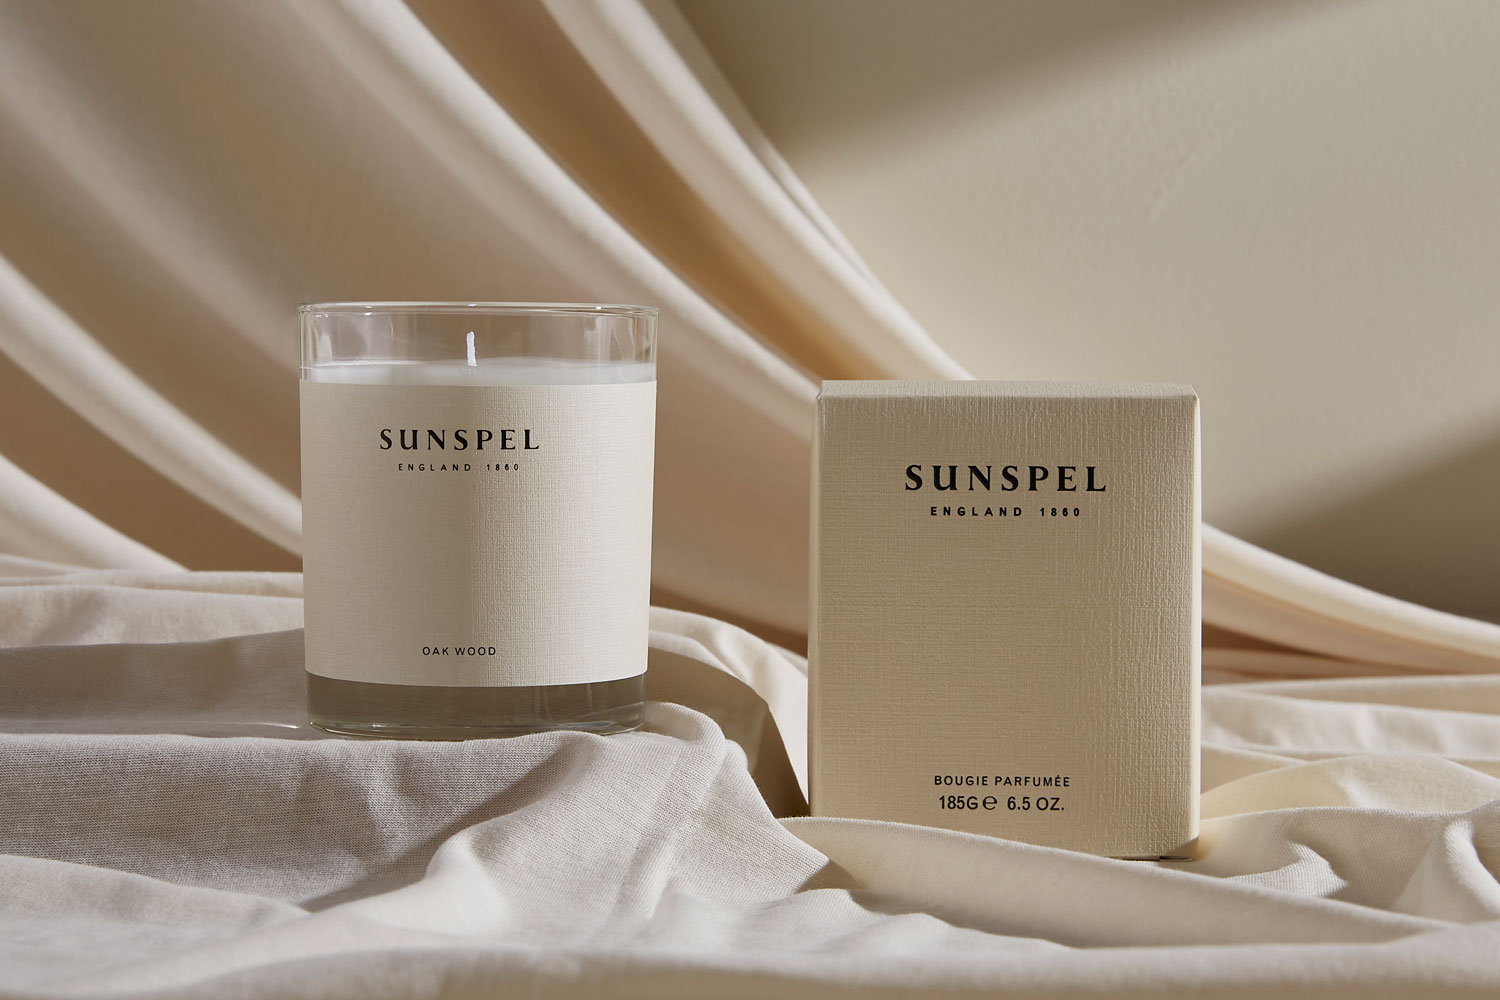 Progress Packaging Sunspel Beauty Candle Glass Retail Luxury Carton Gift Branded Bespoke Creative Black Foill Manufacture Production 03